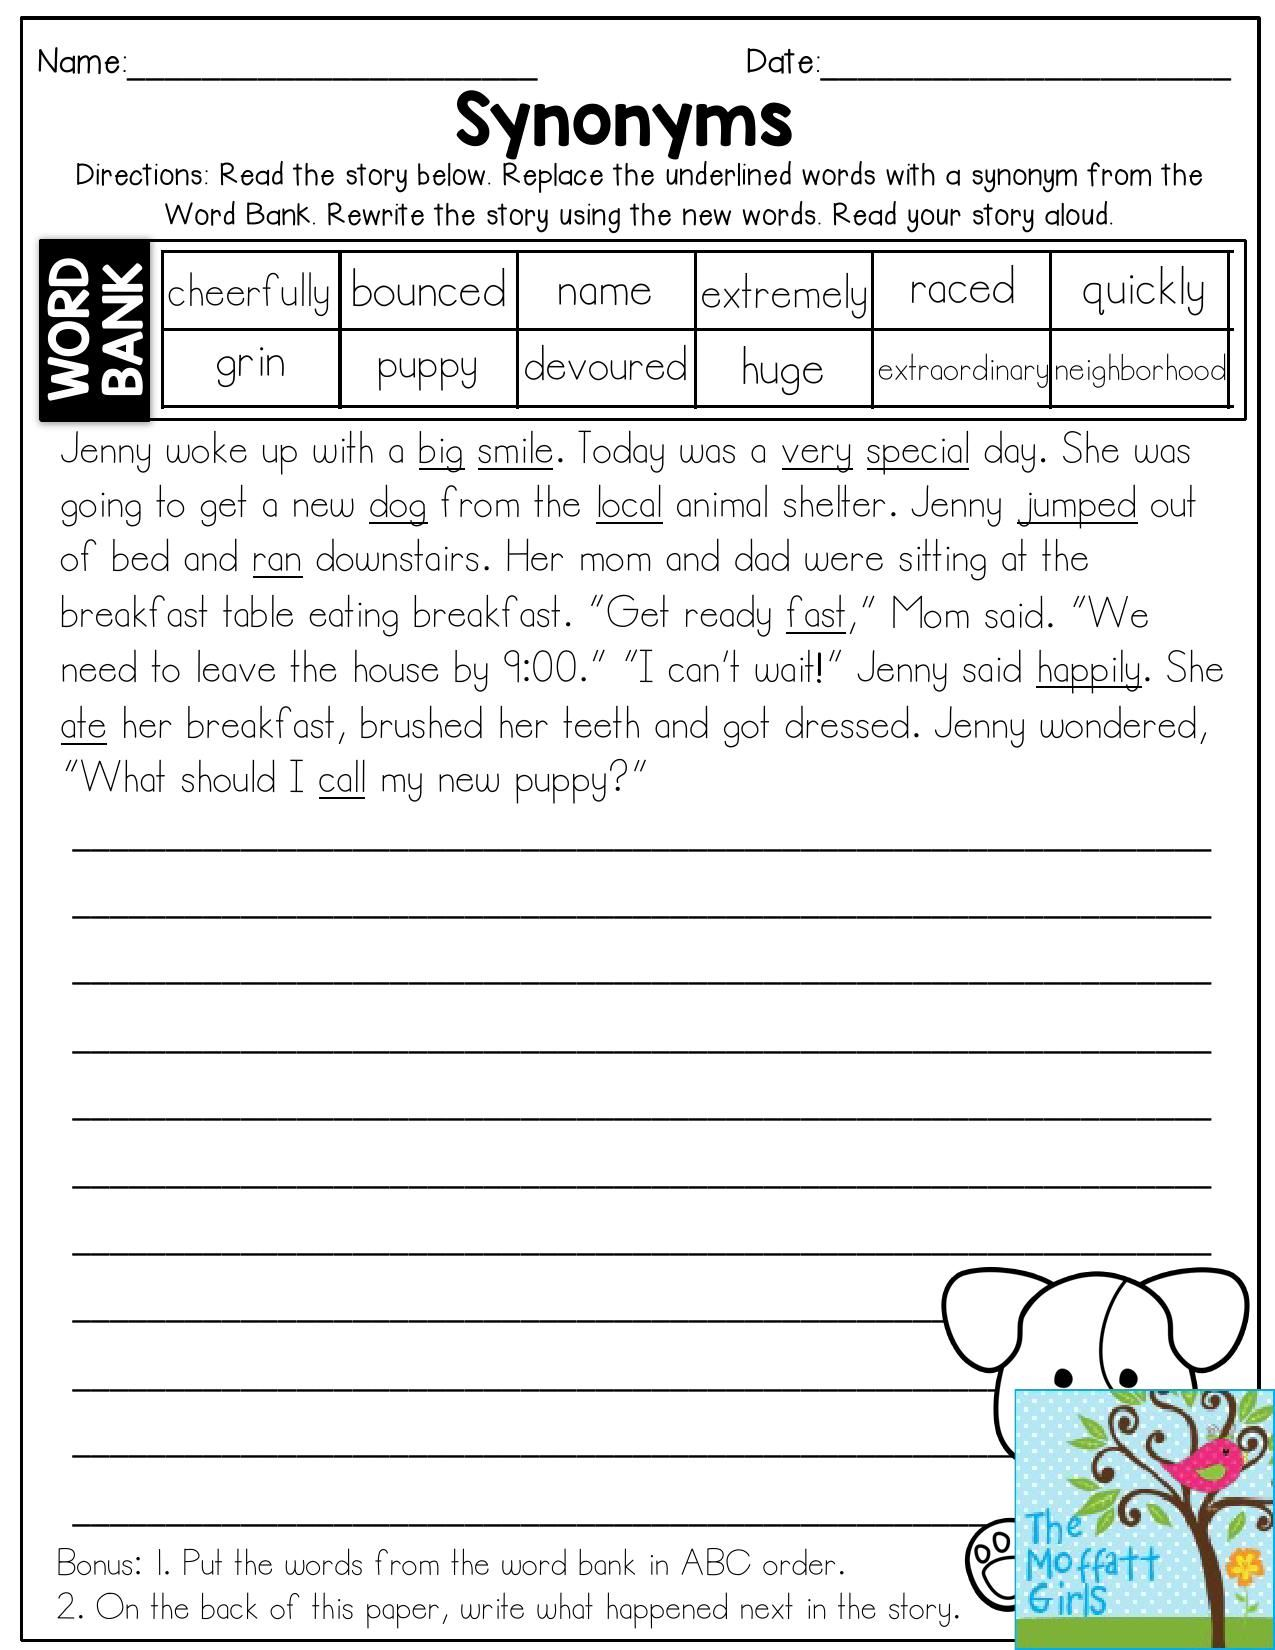 Worksheets Antonym Synonym List synonyms read the story and replace underlined words with then rewrite the